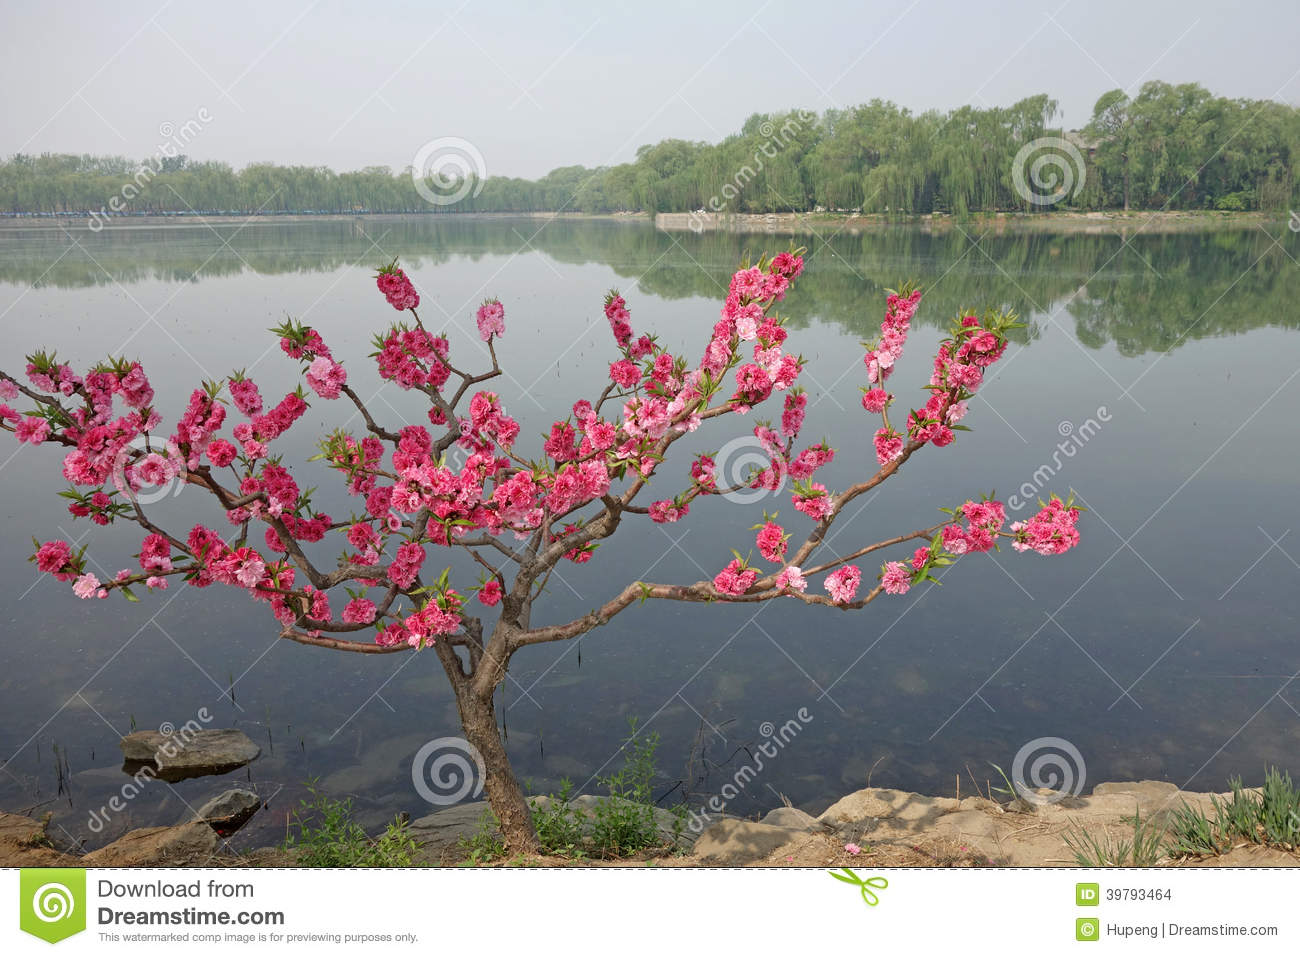 The west causeway(xidi) with Flowering peach